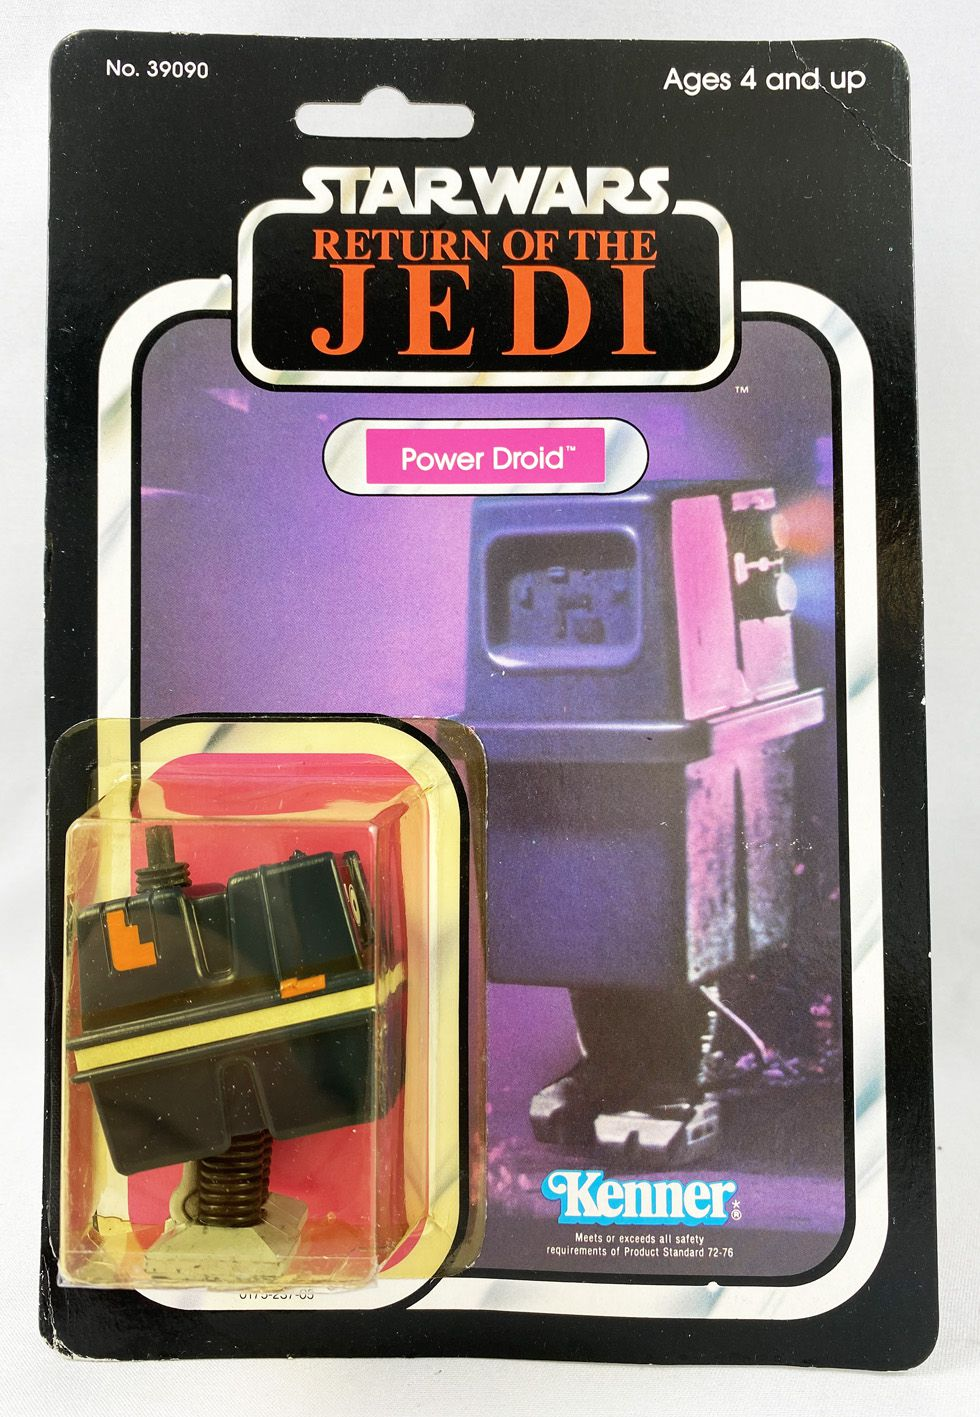 Star Wars ROTJ 1983 - Kenner 77back A - Power Droid